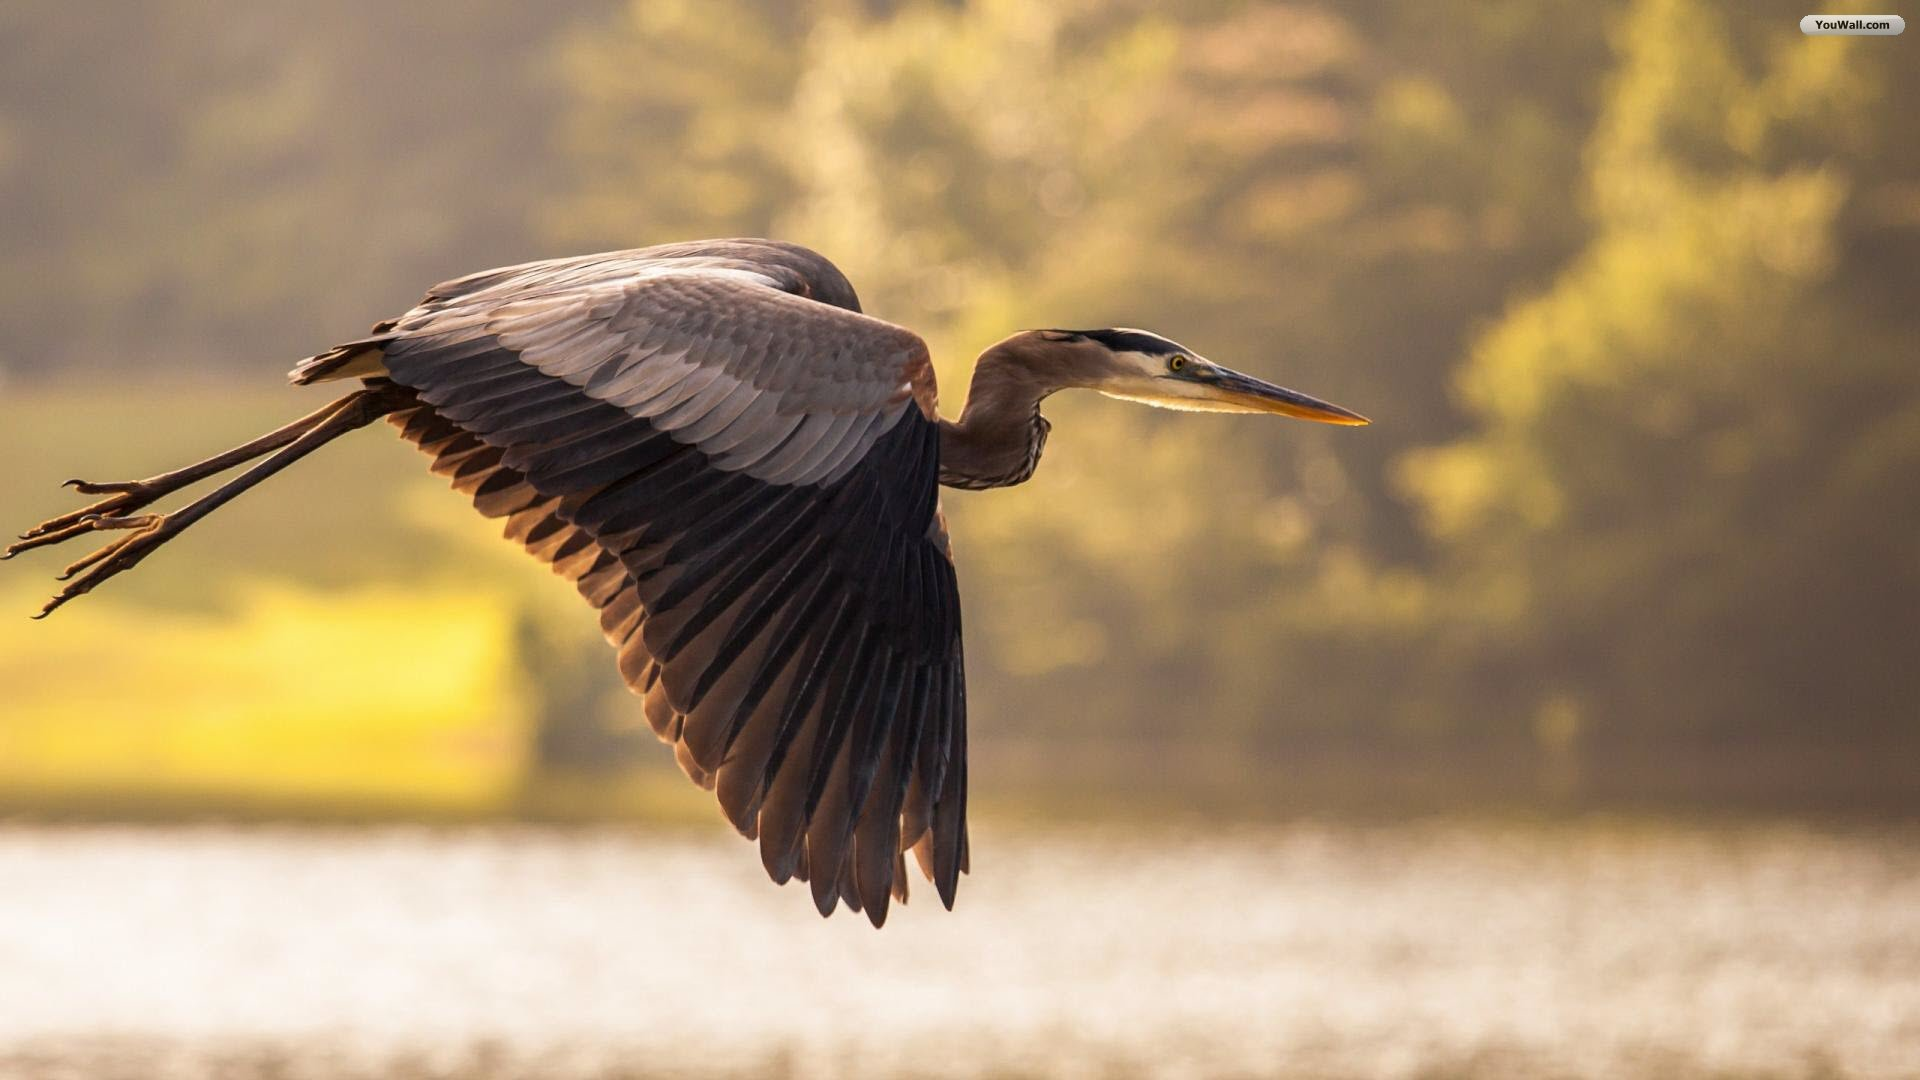 Flying Heron Wallpaper